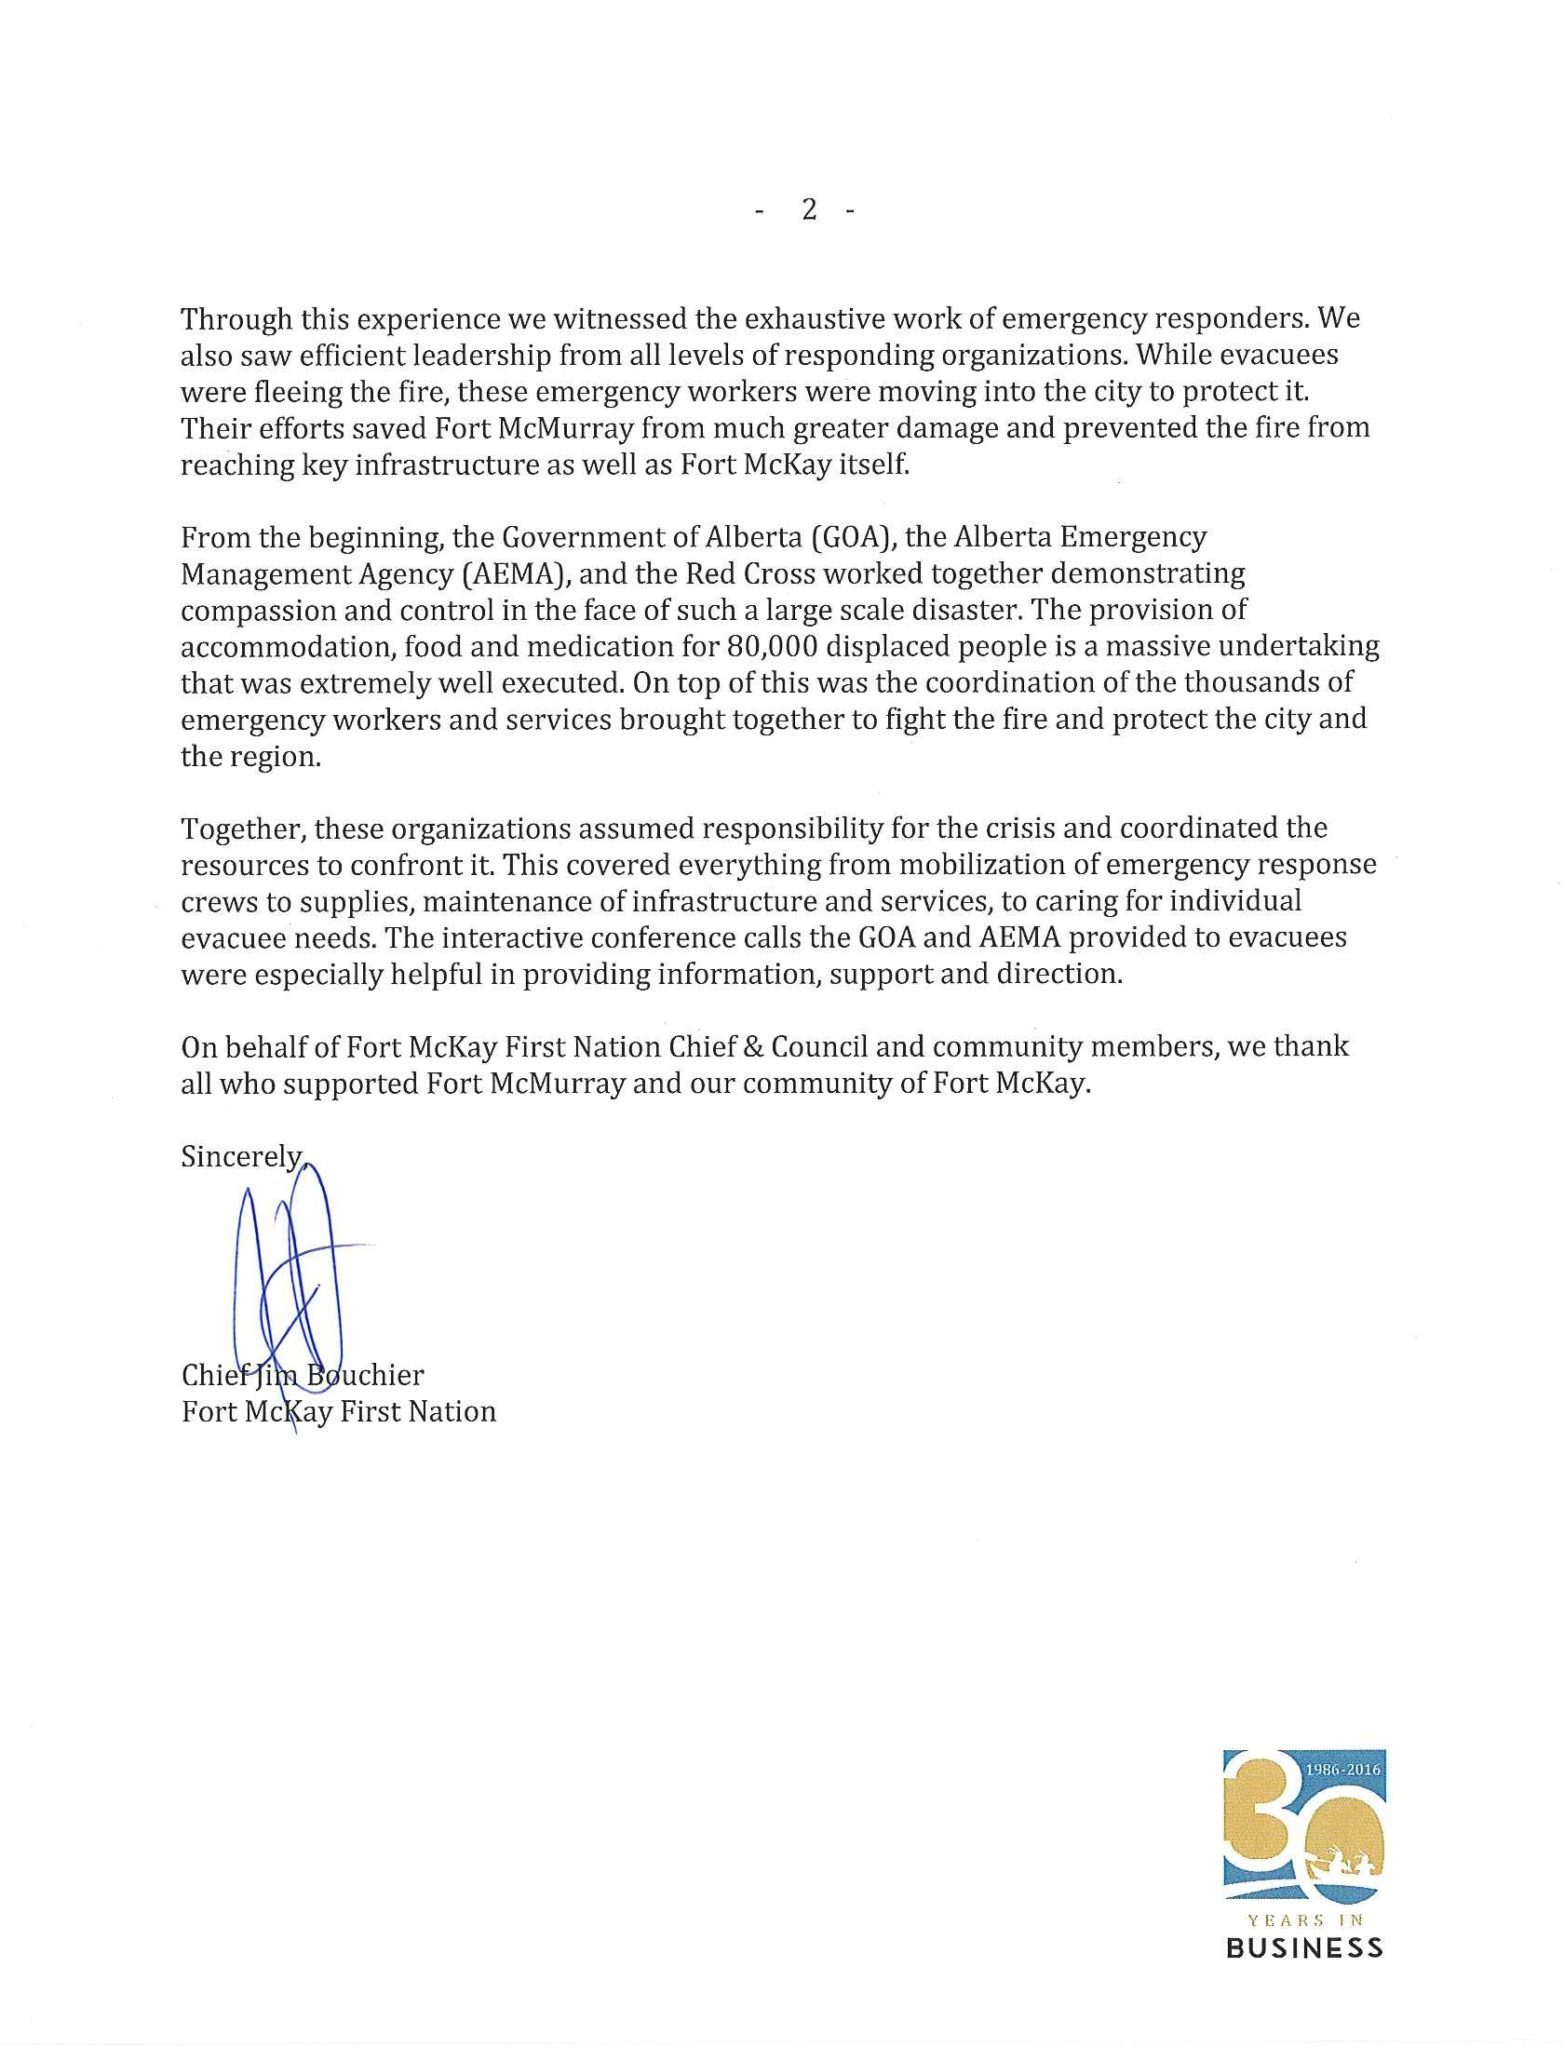 Chief Bouchier - Fort McMurray Fire - Open Letter to Public (b)